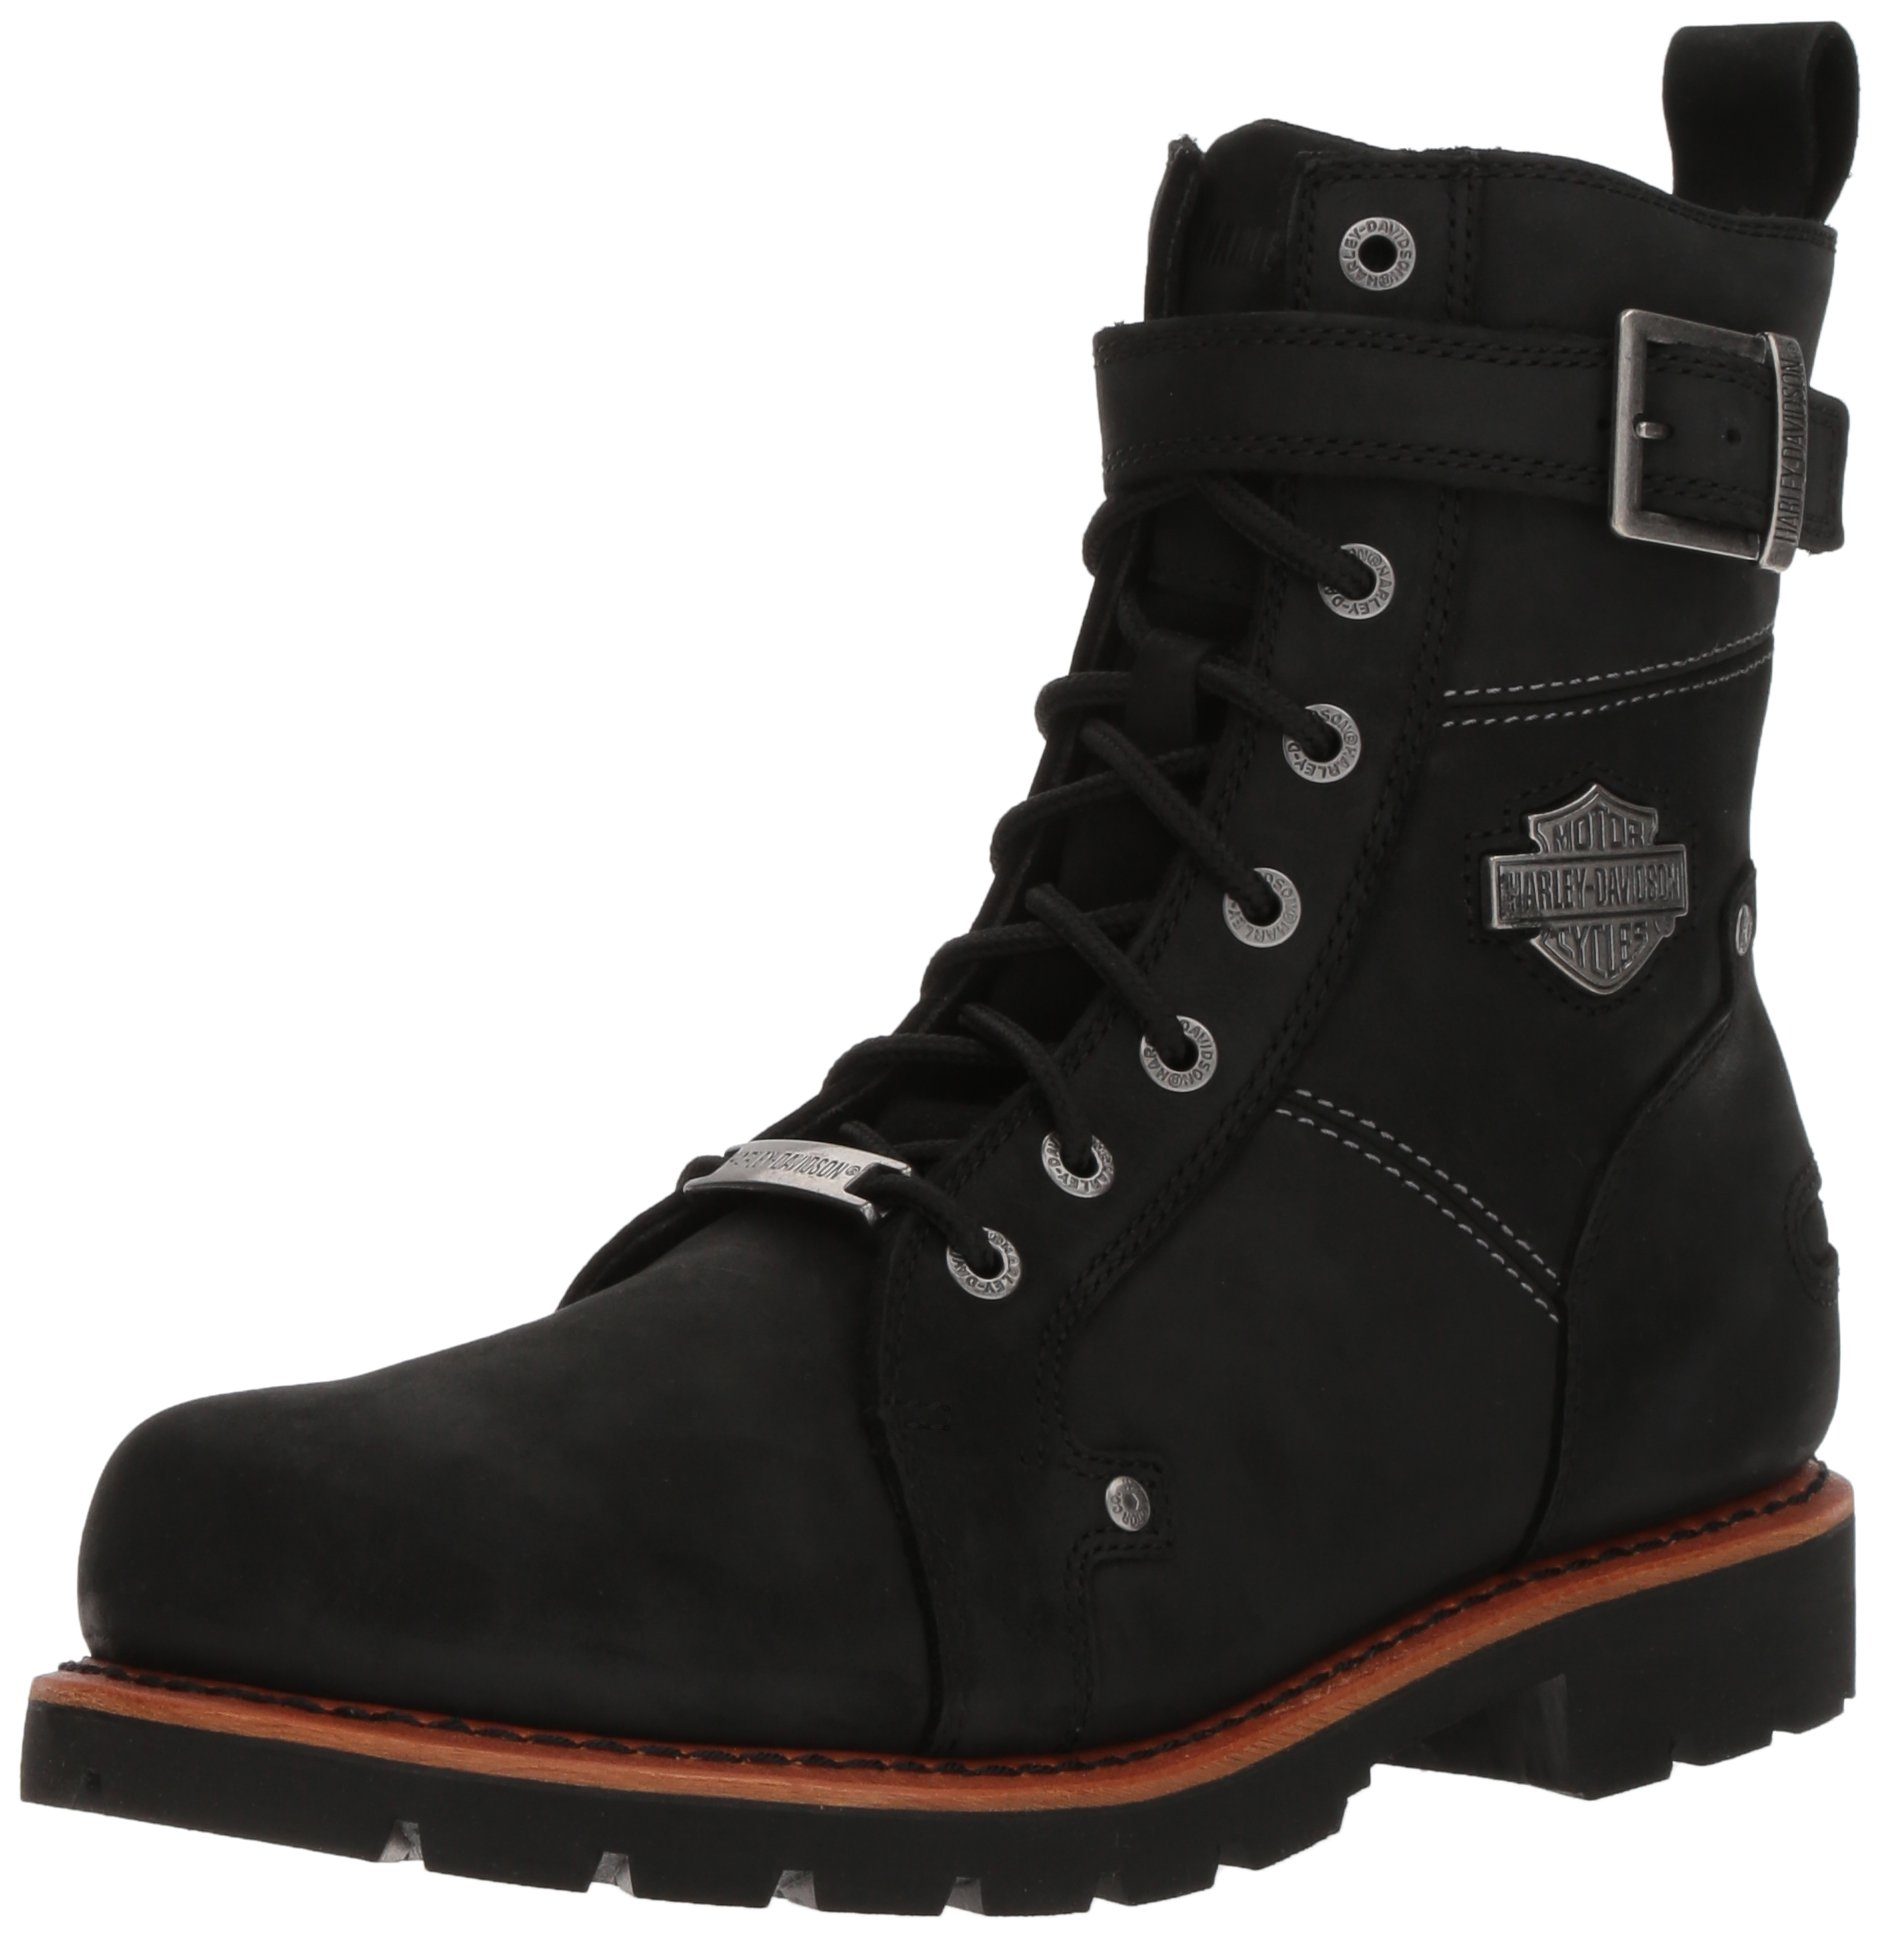 Harley-Davidson Men's Wickson Motorcycle Boot, Black, 7.5 Medium US